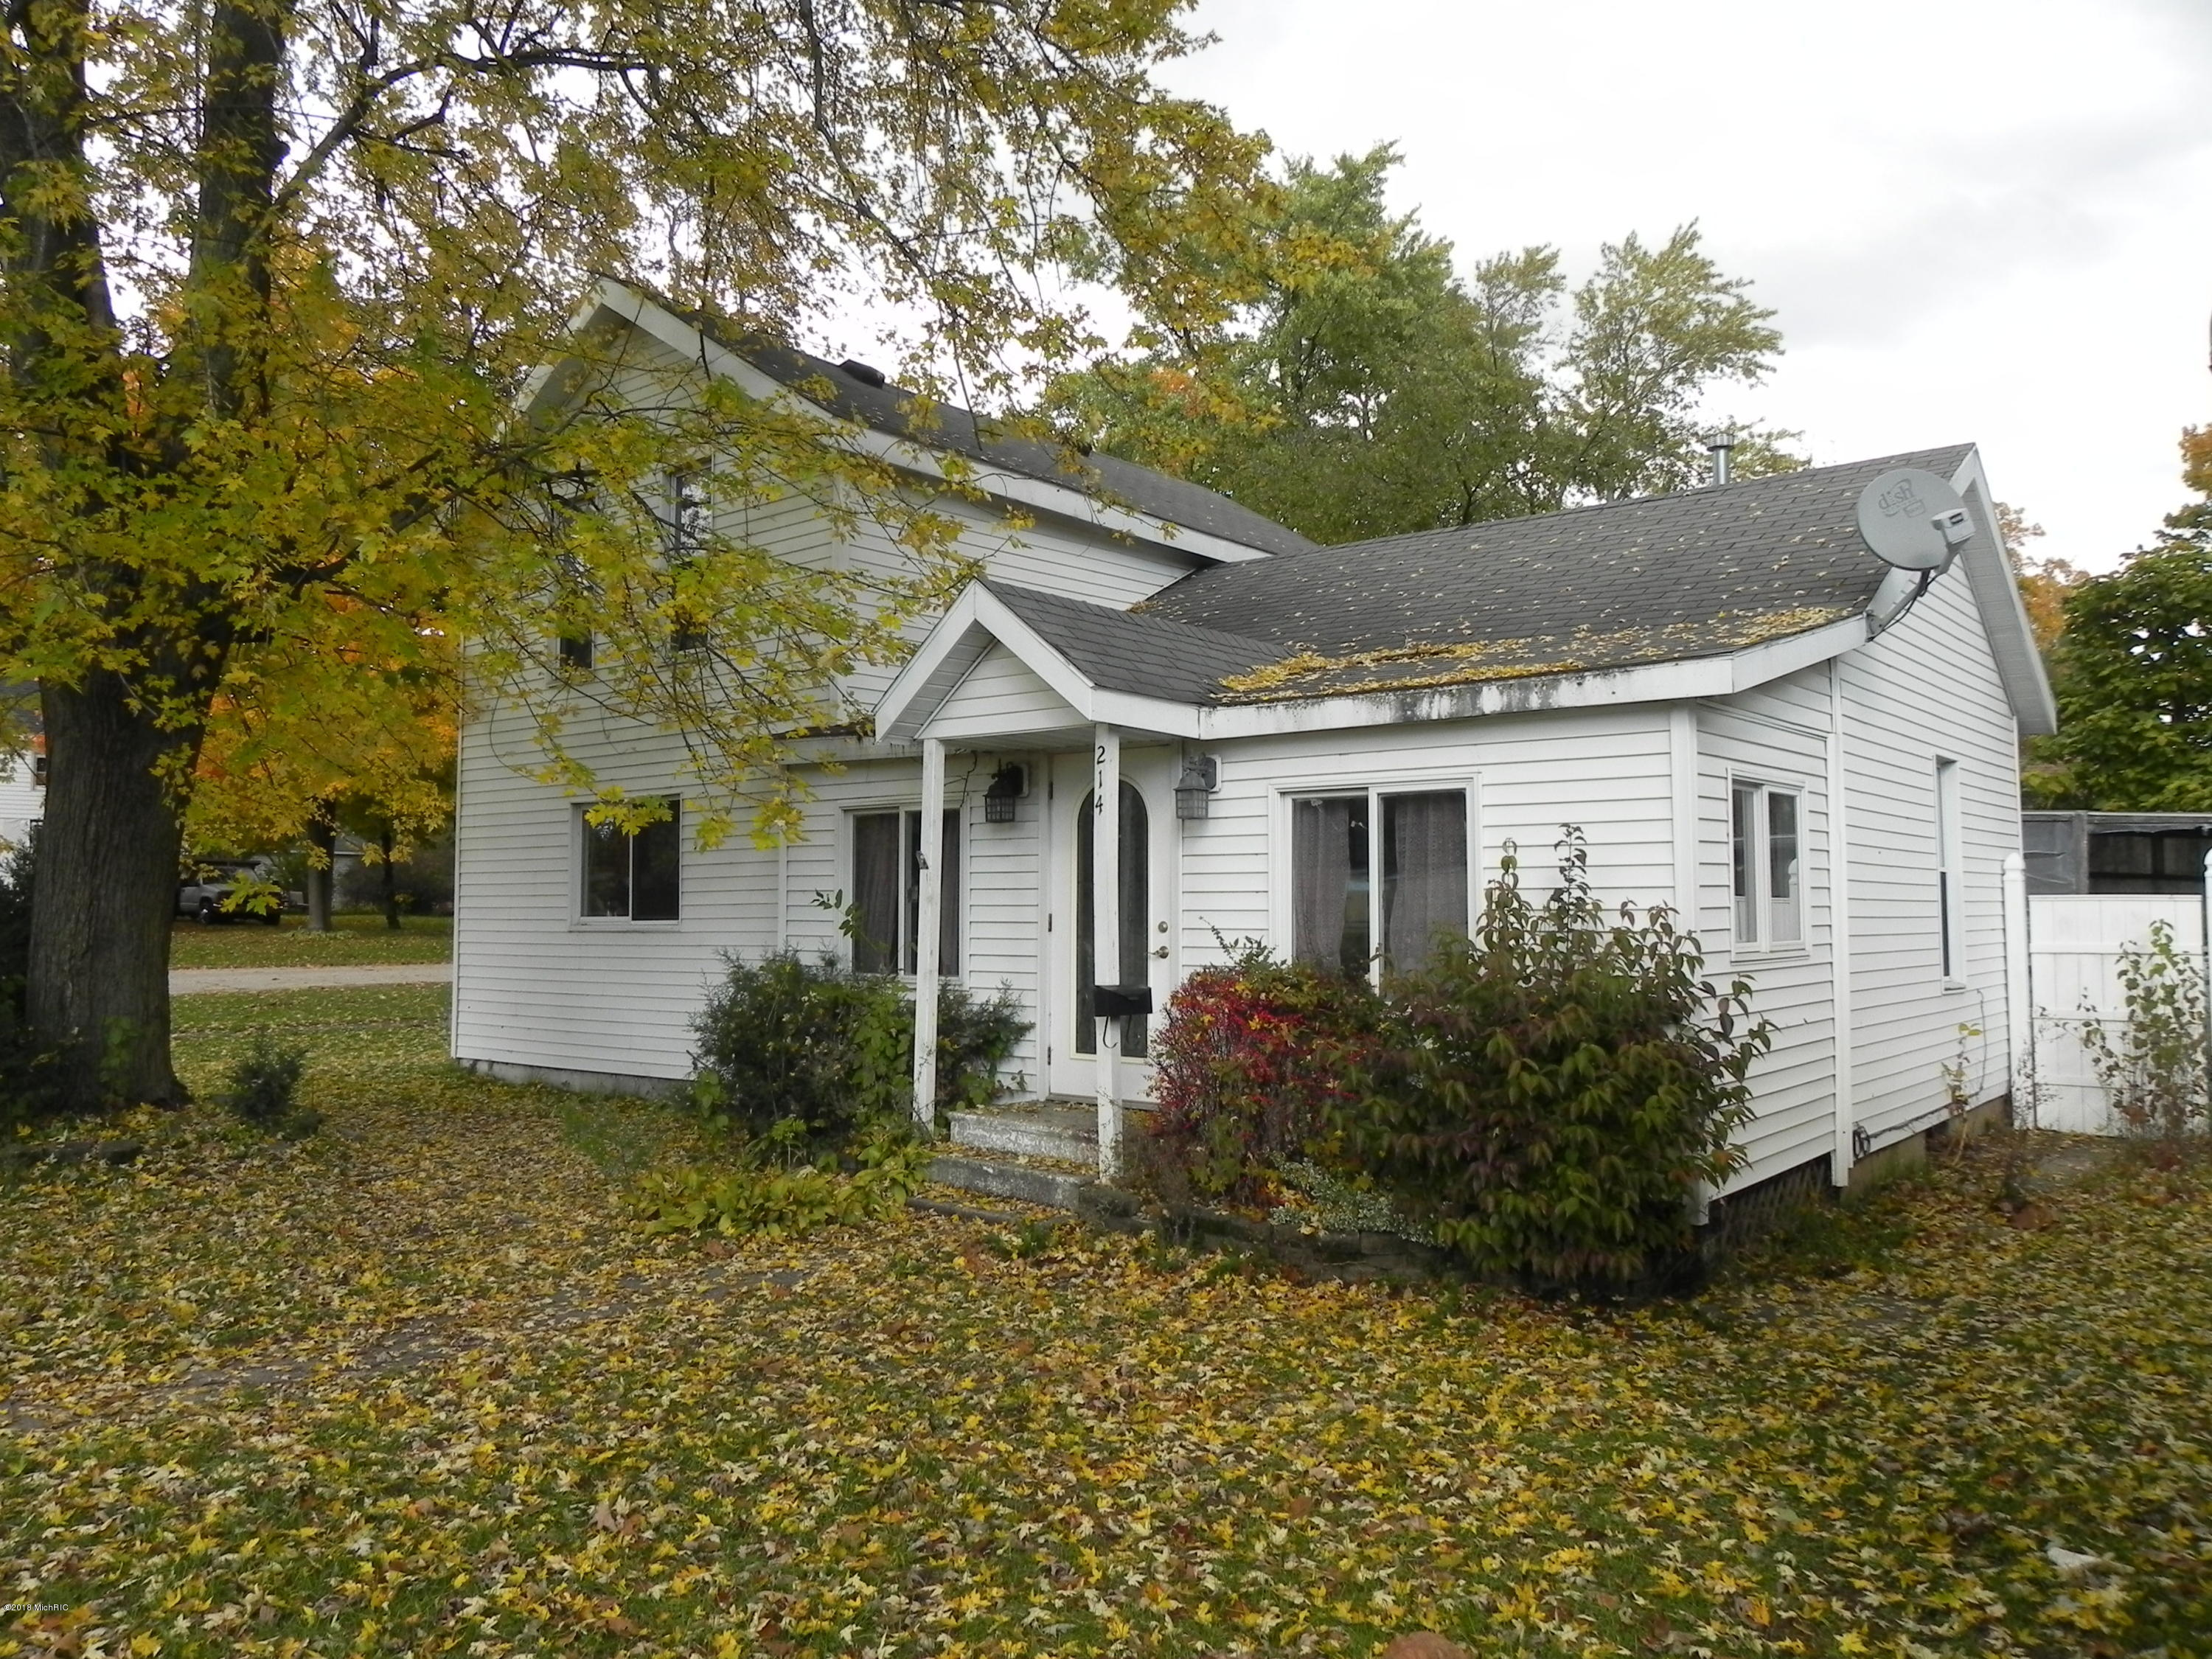 Photo for 214 N George Street, Decatur, MI 49045 (MLS # 18052777)